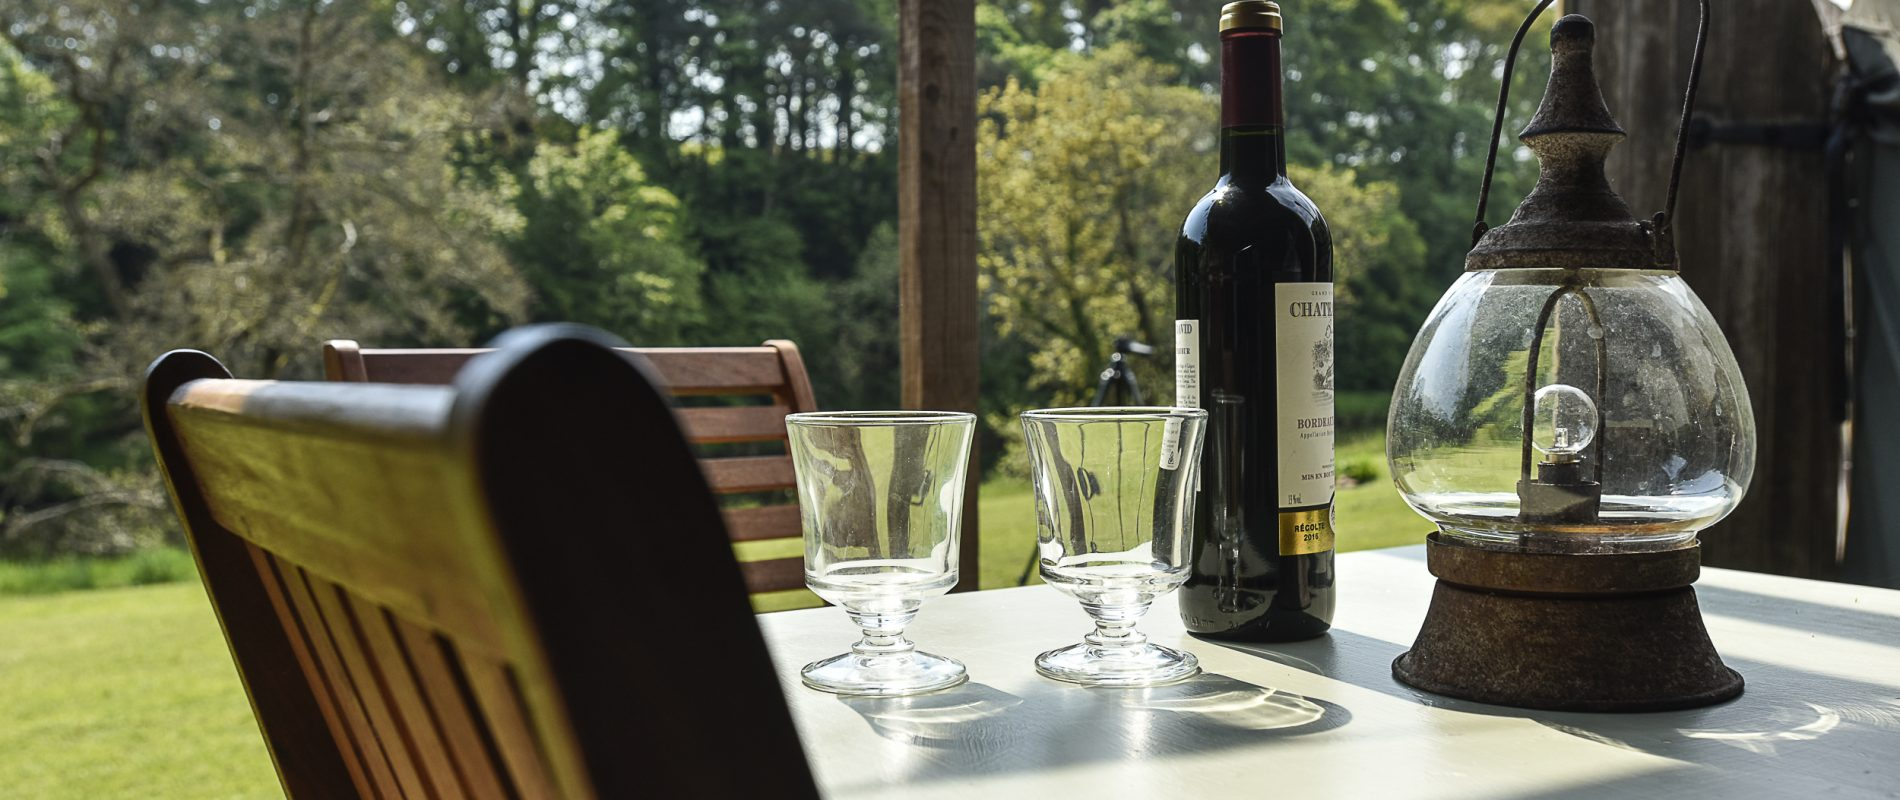 Table and Wine